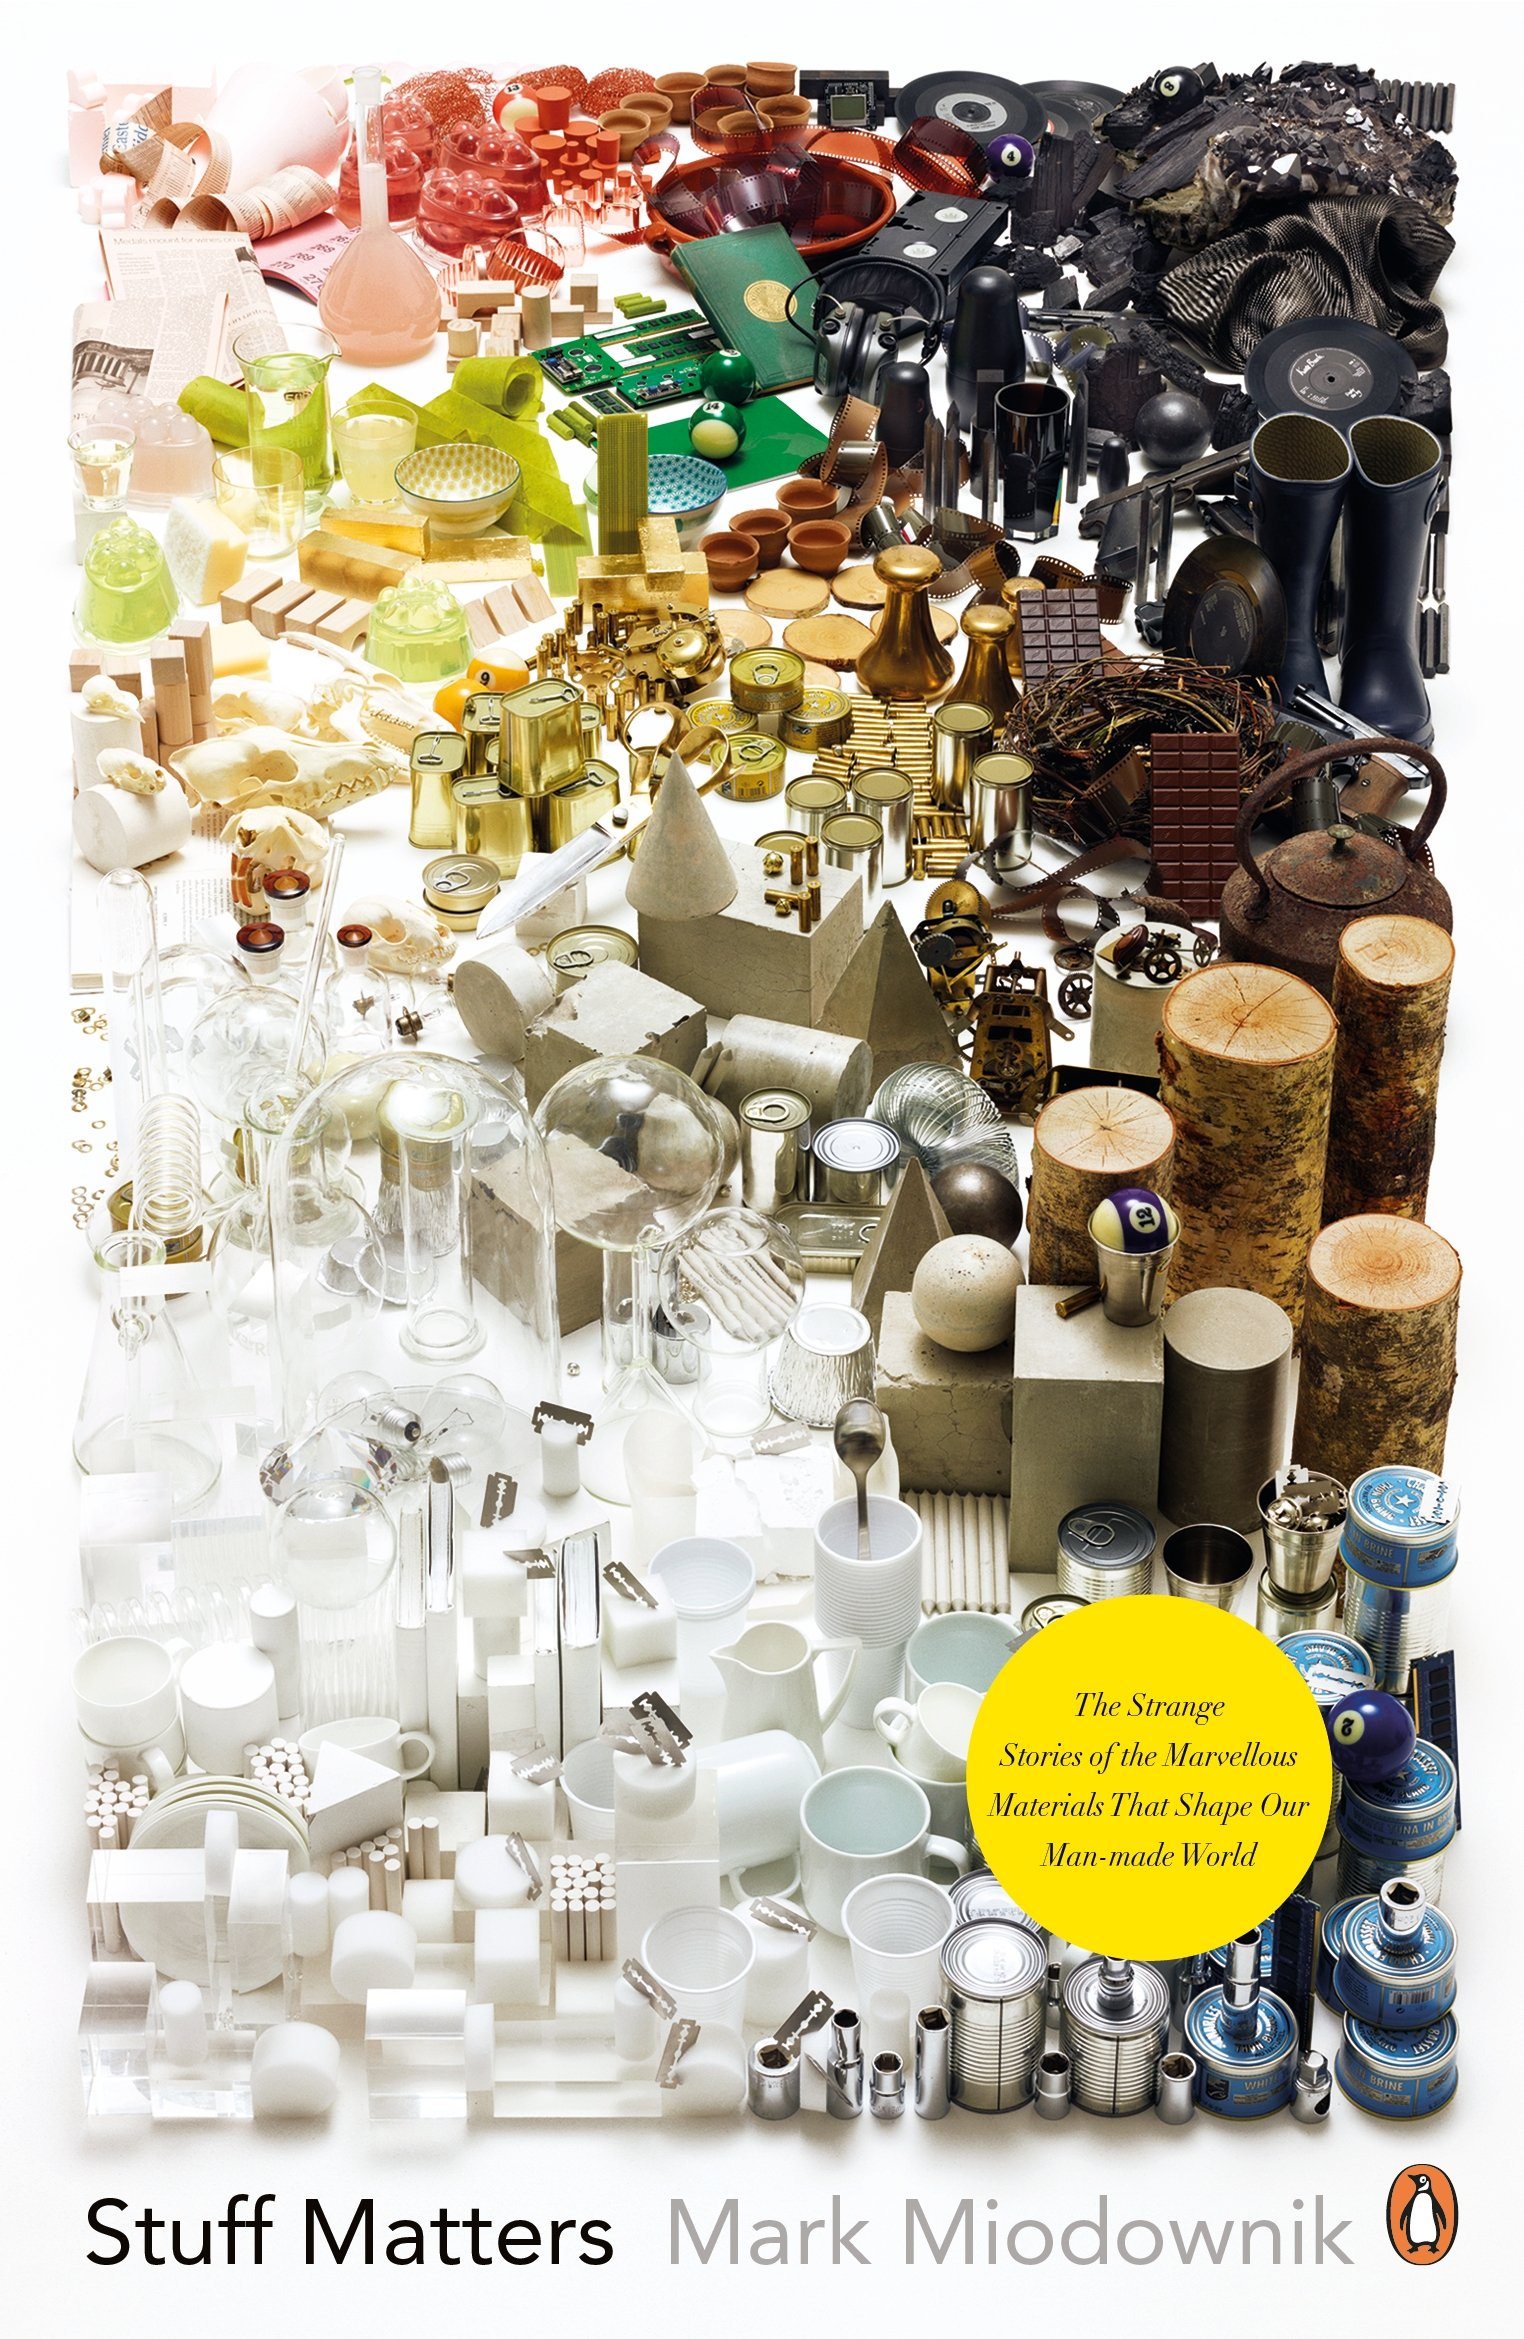 Stuff Matters: The Strange Stories of the Marvellous Materials that Shape Our Man-made World: Amazon.co.uk: Mark Miodownik: 9780241955185: Books